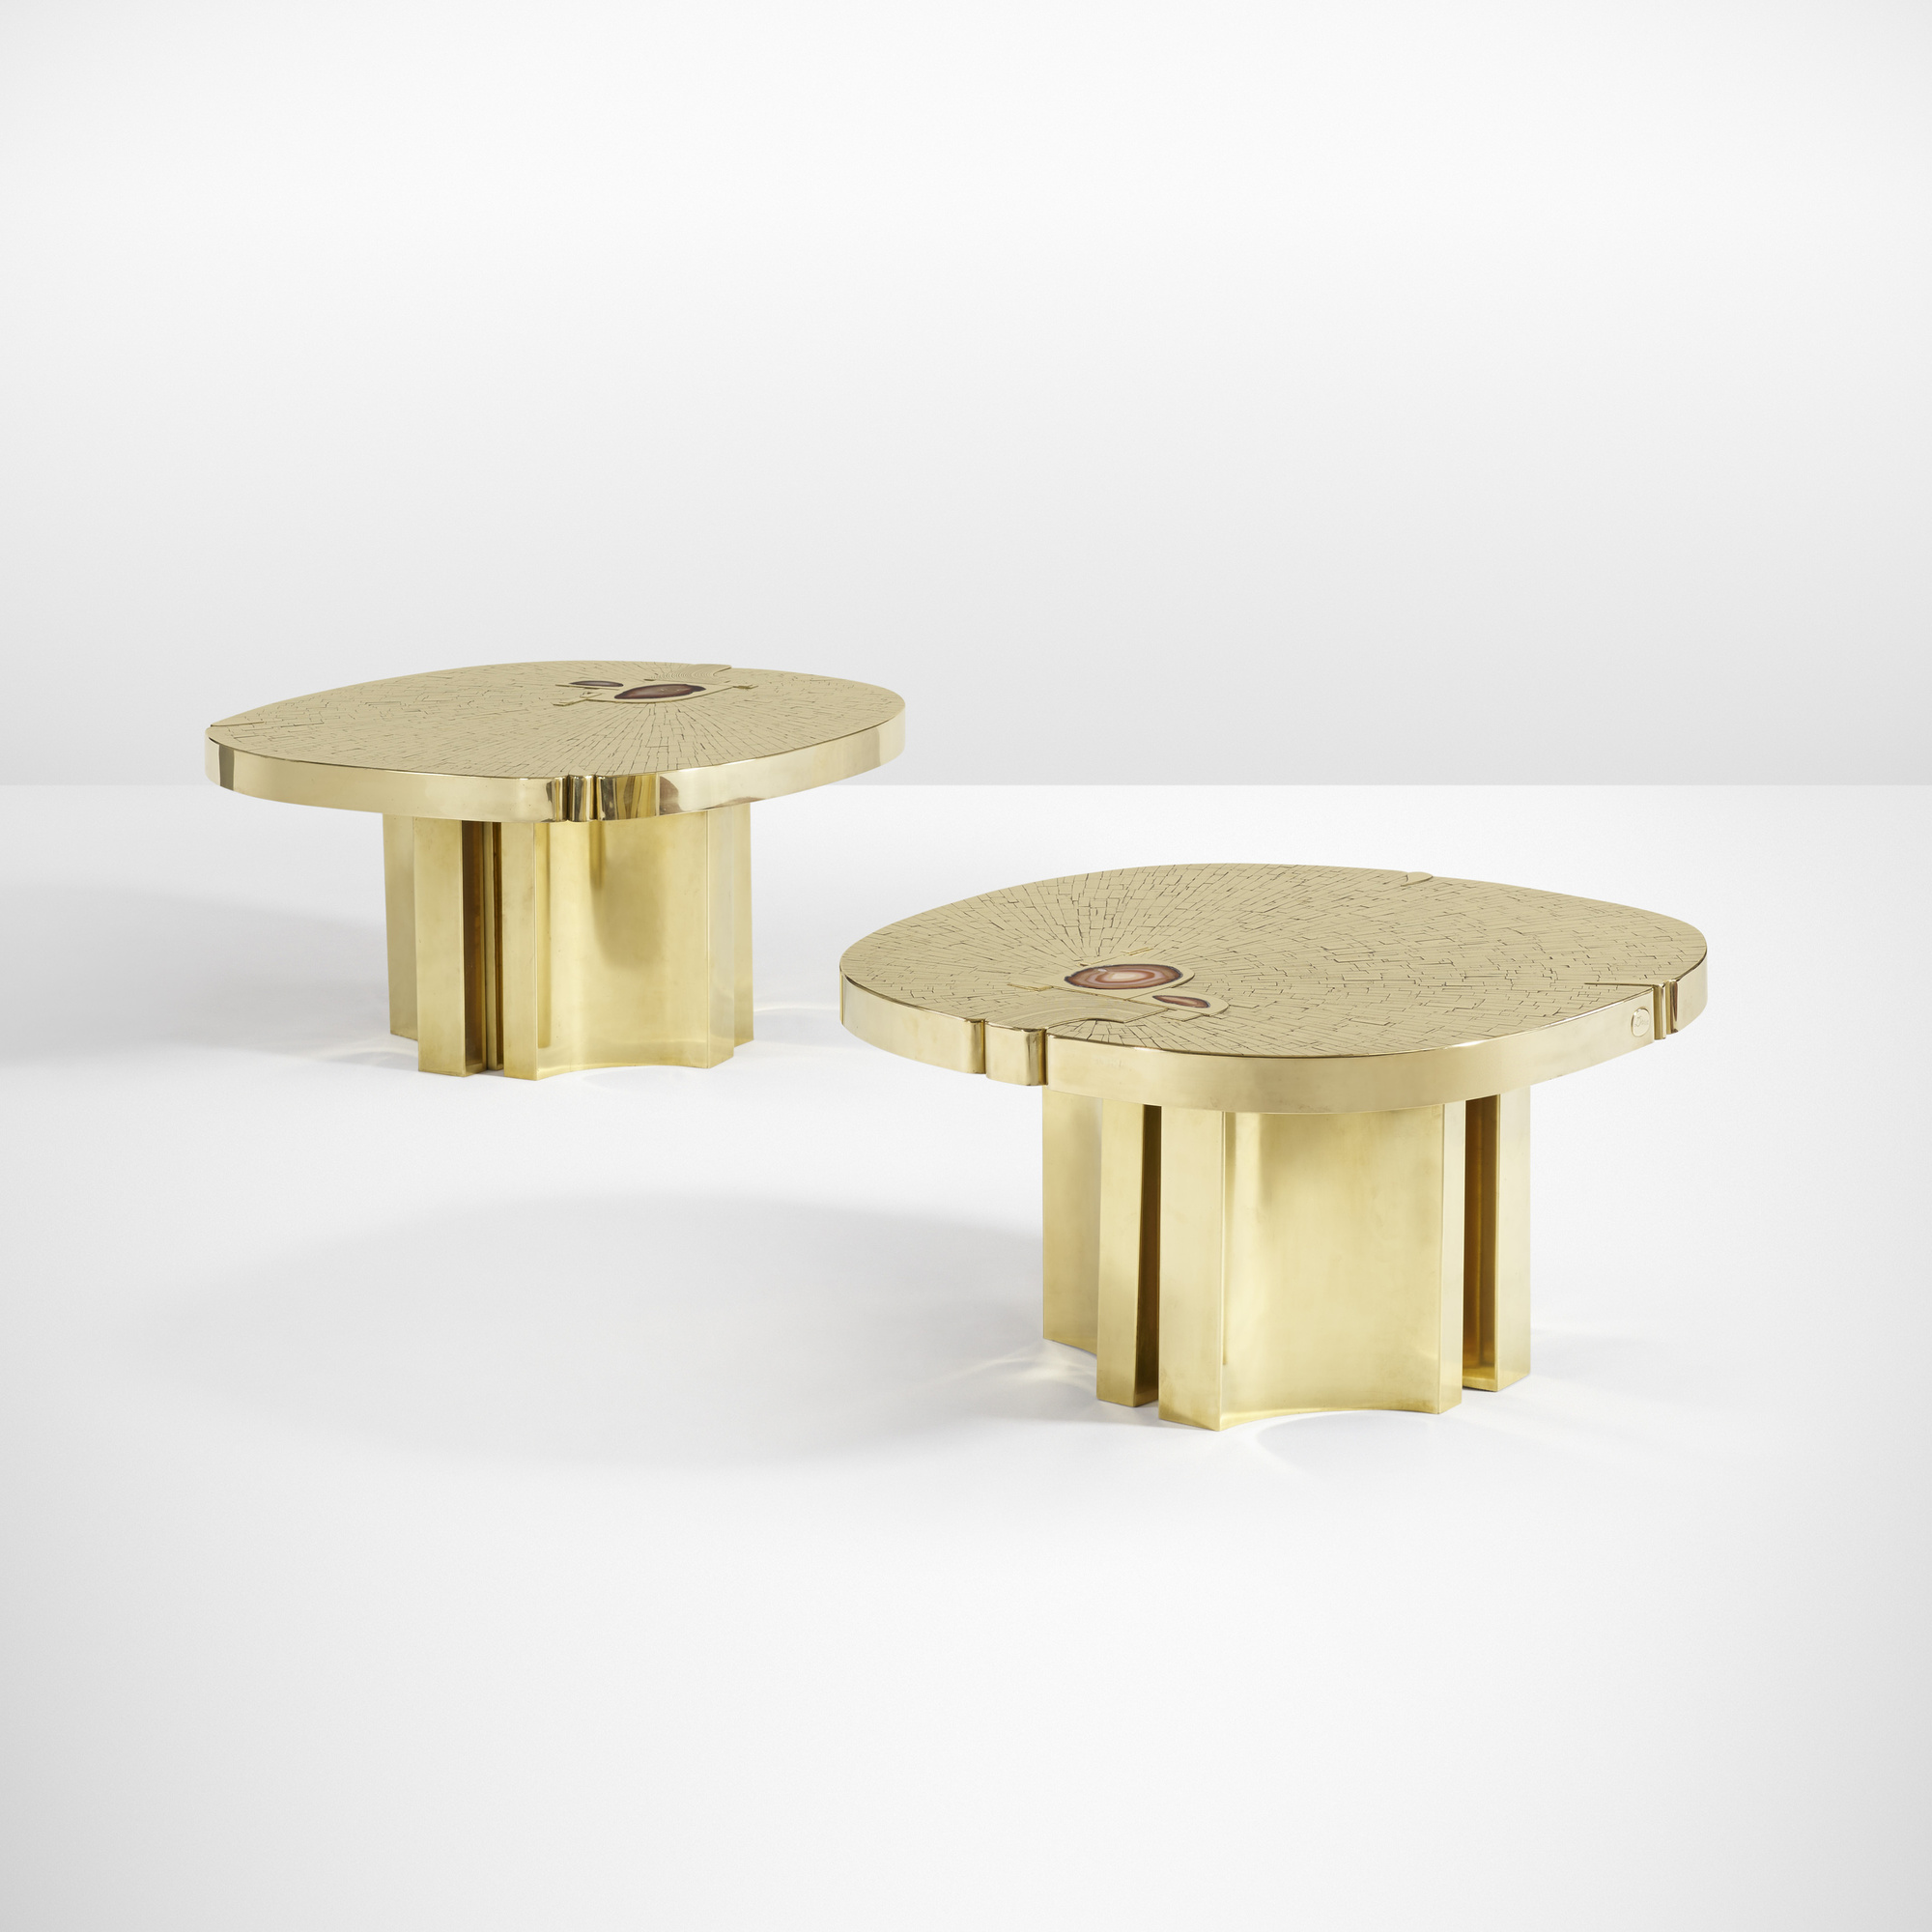 18: Jean Claude Dresse / Pair of Rare and Important tables (1 of 4)